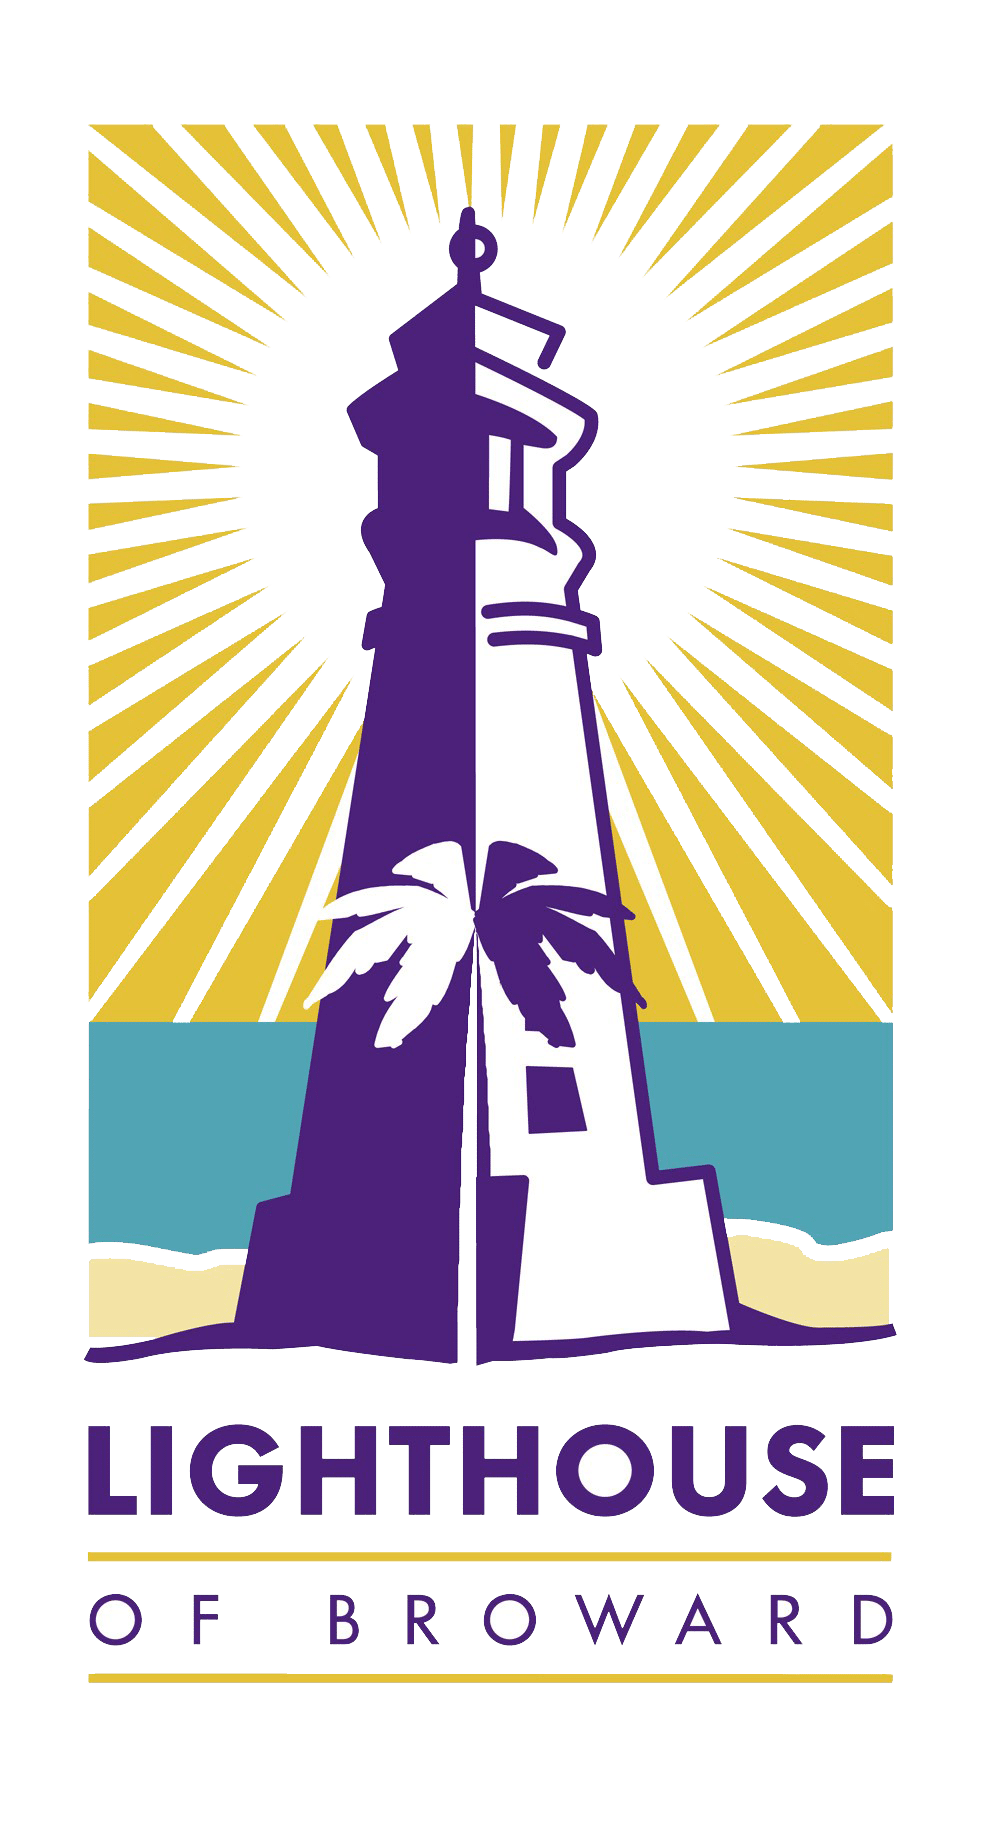 Lighthouse of Broward logo